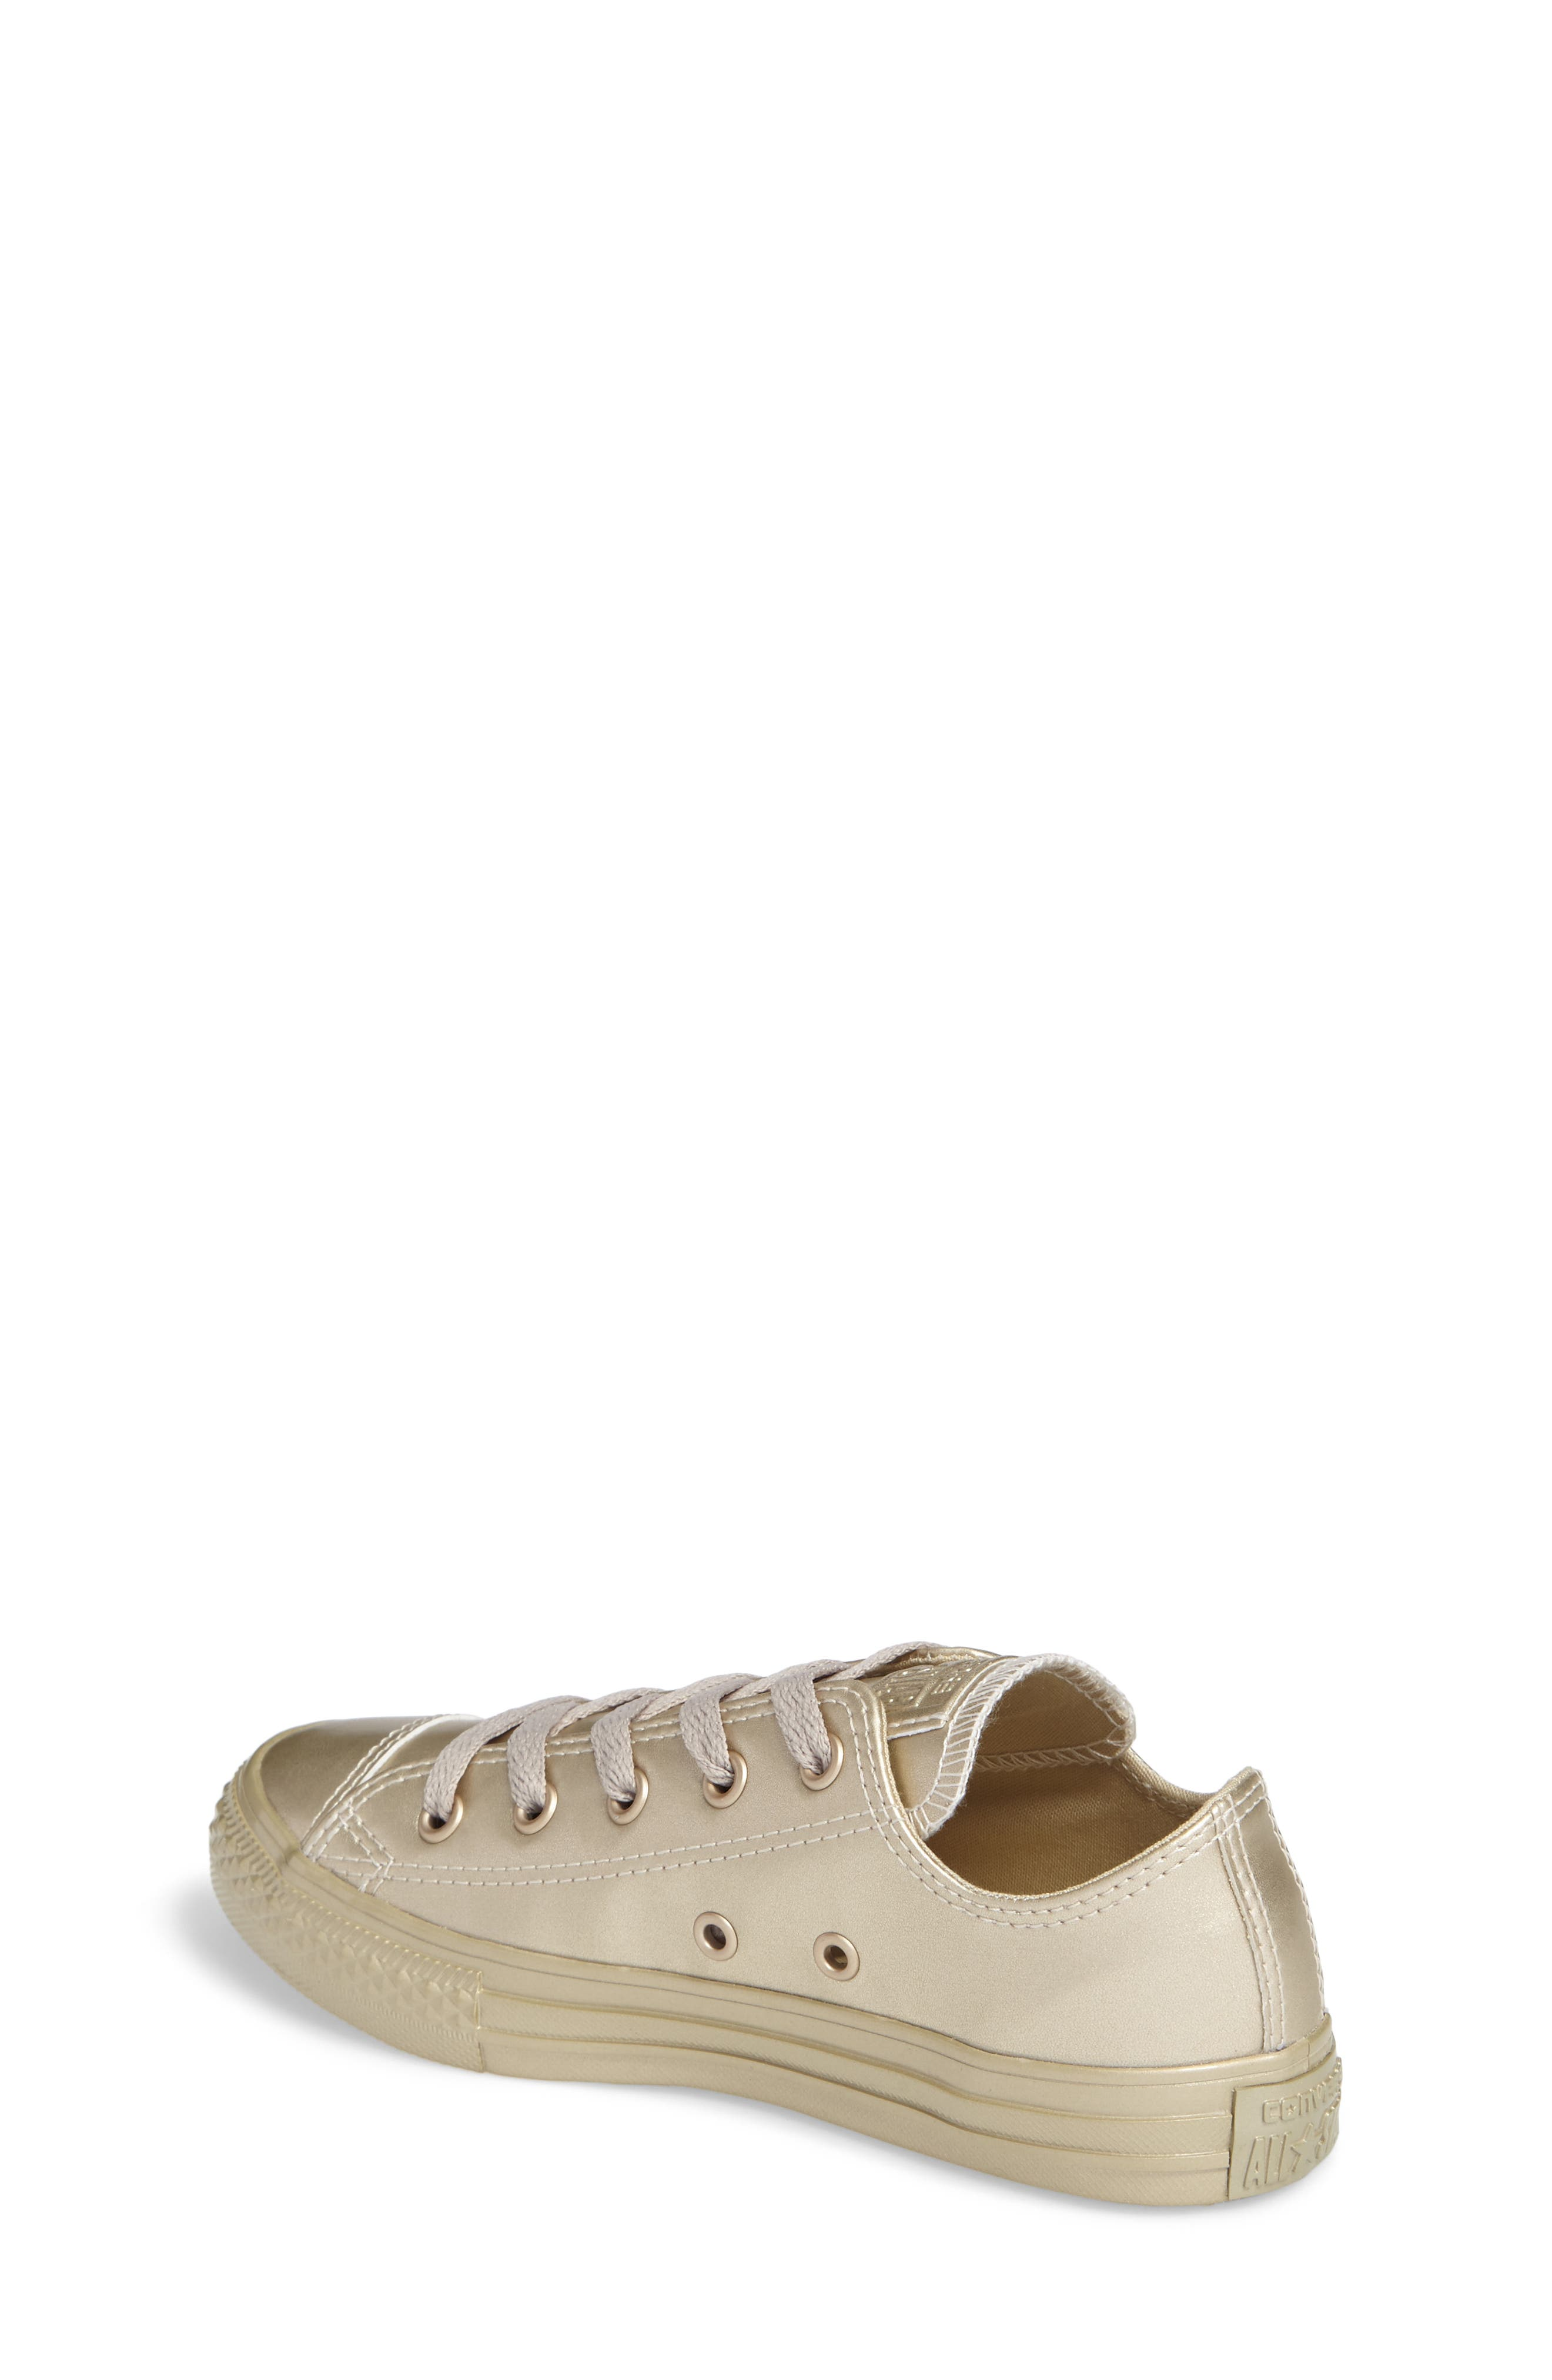 Chuck Taylor<sup>®</sup> All Star<sup>®</sup> Mono Metallic Low Top Sneaker,                             Alternate thumbnail 2, color,                             710